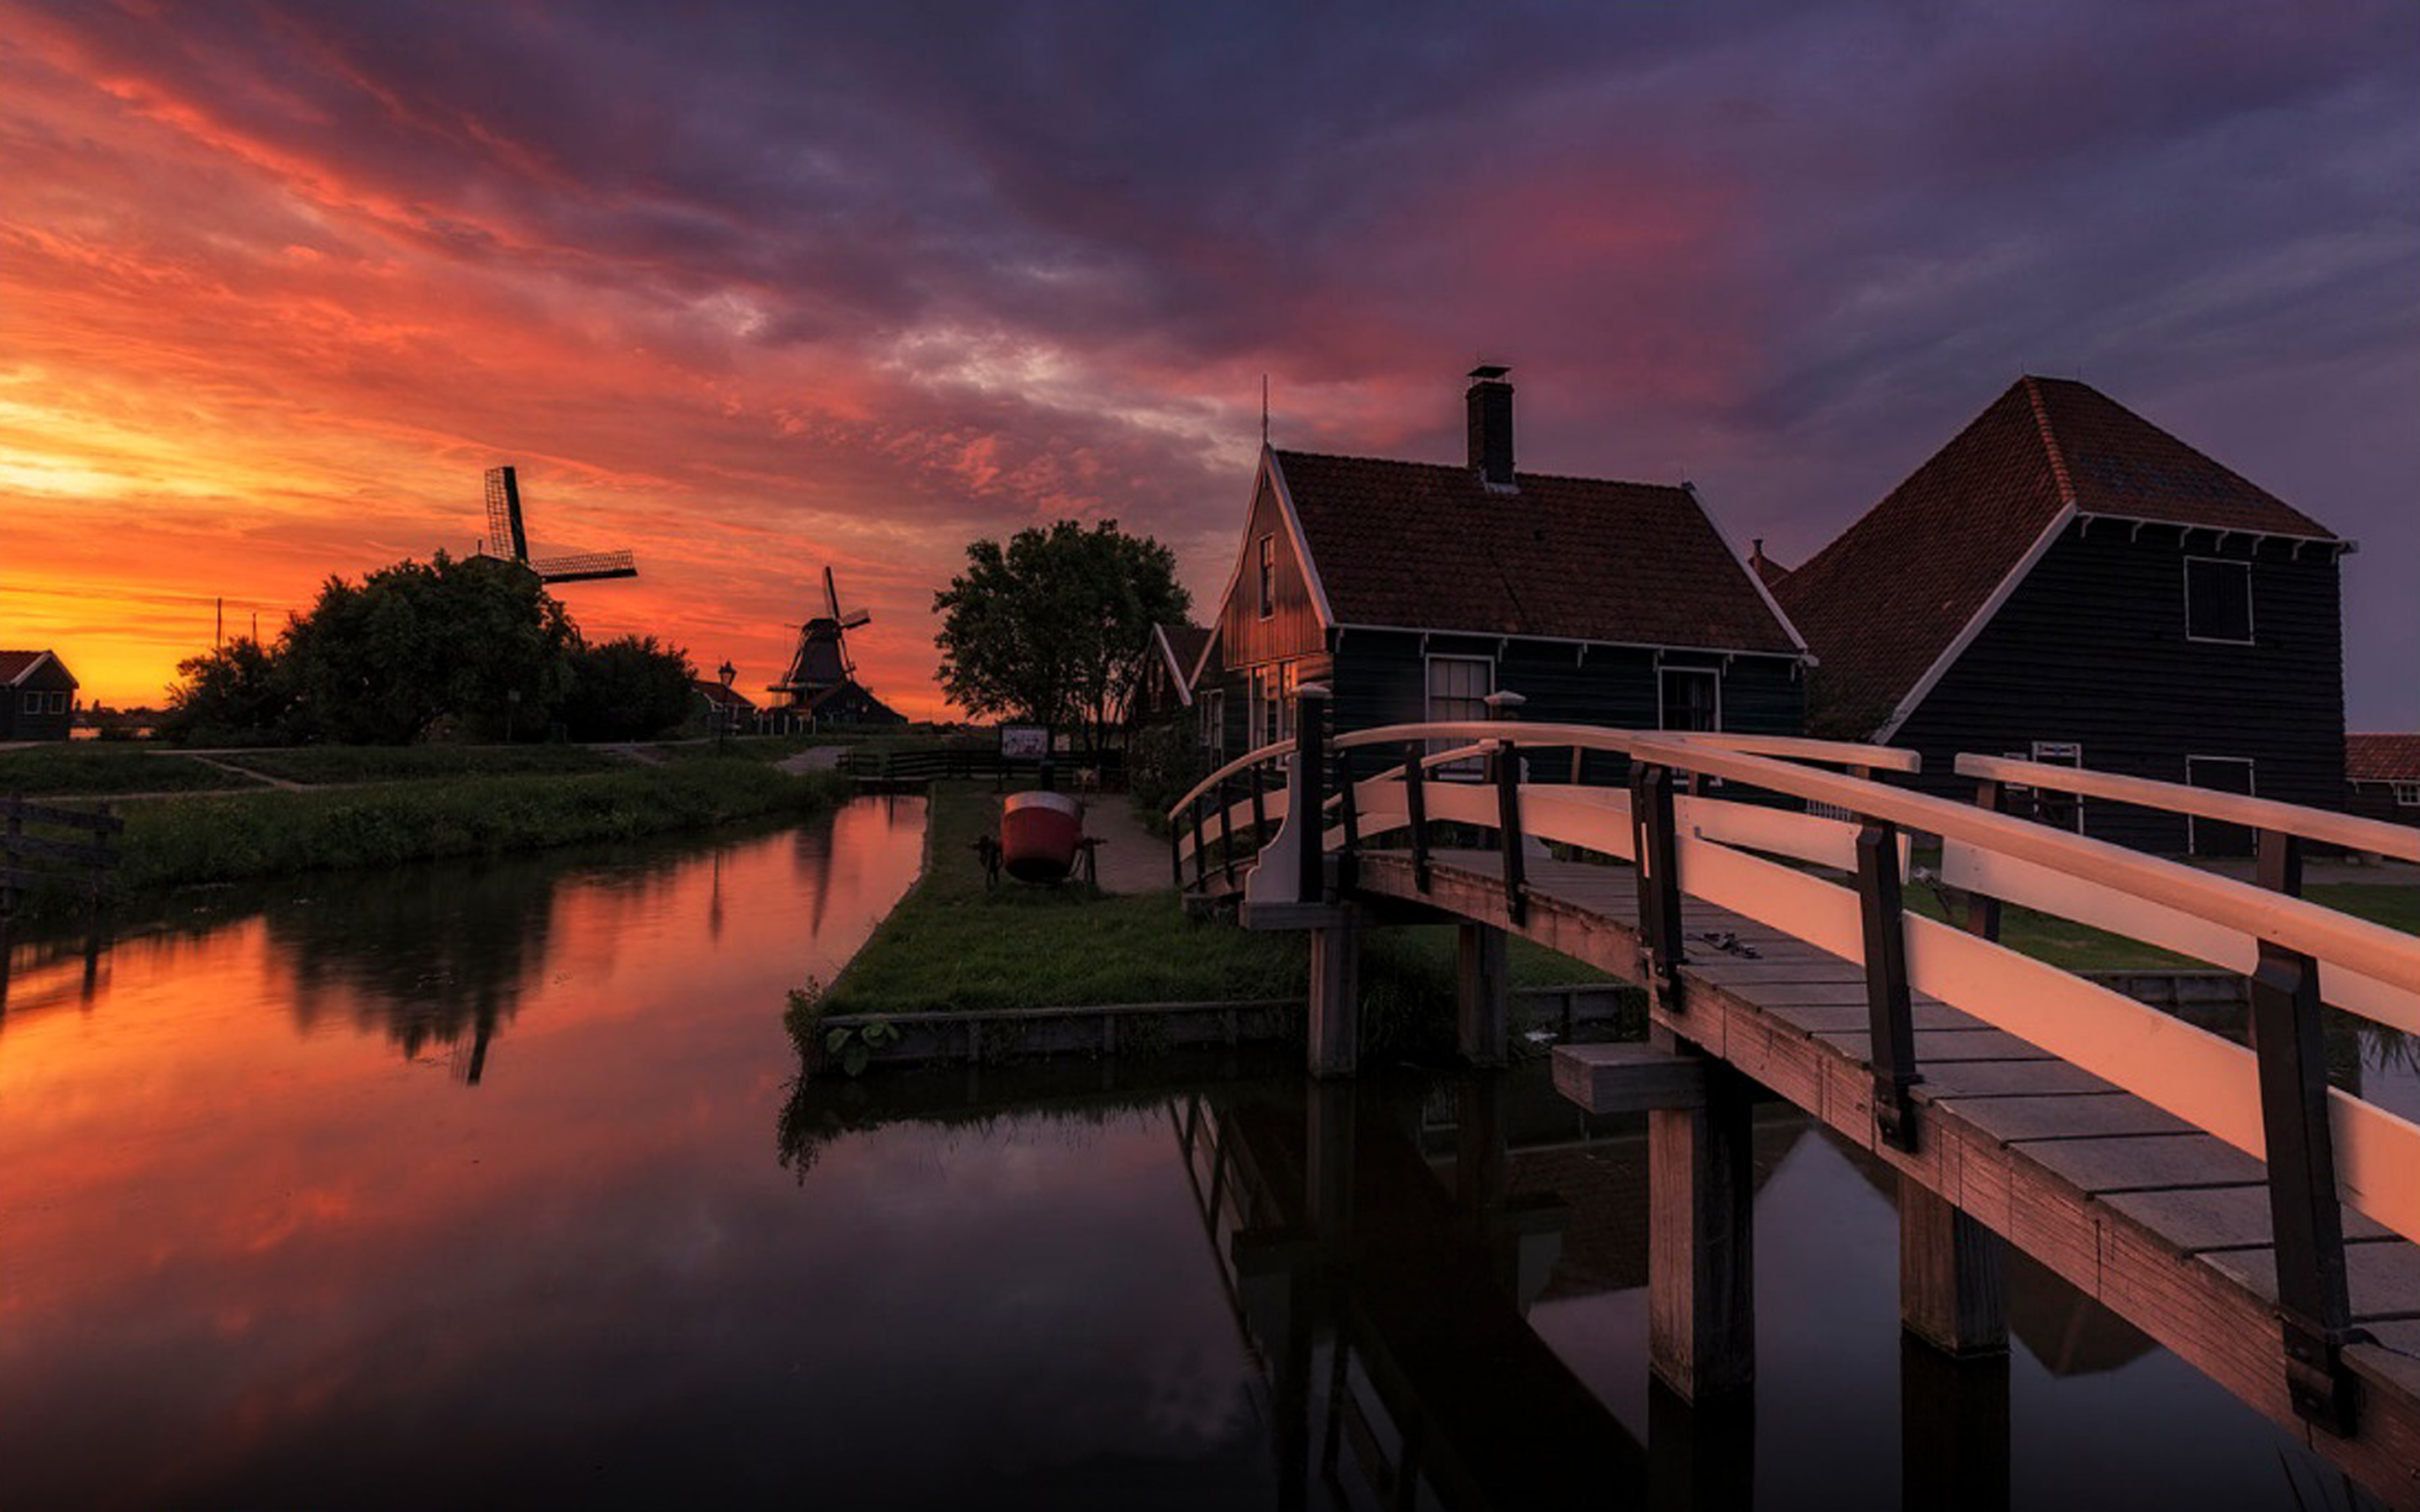 Wallpaper Amazing Cars Sunset Farm In Netherlands House And Wooden Bridge Channel